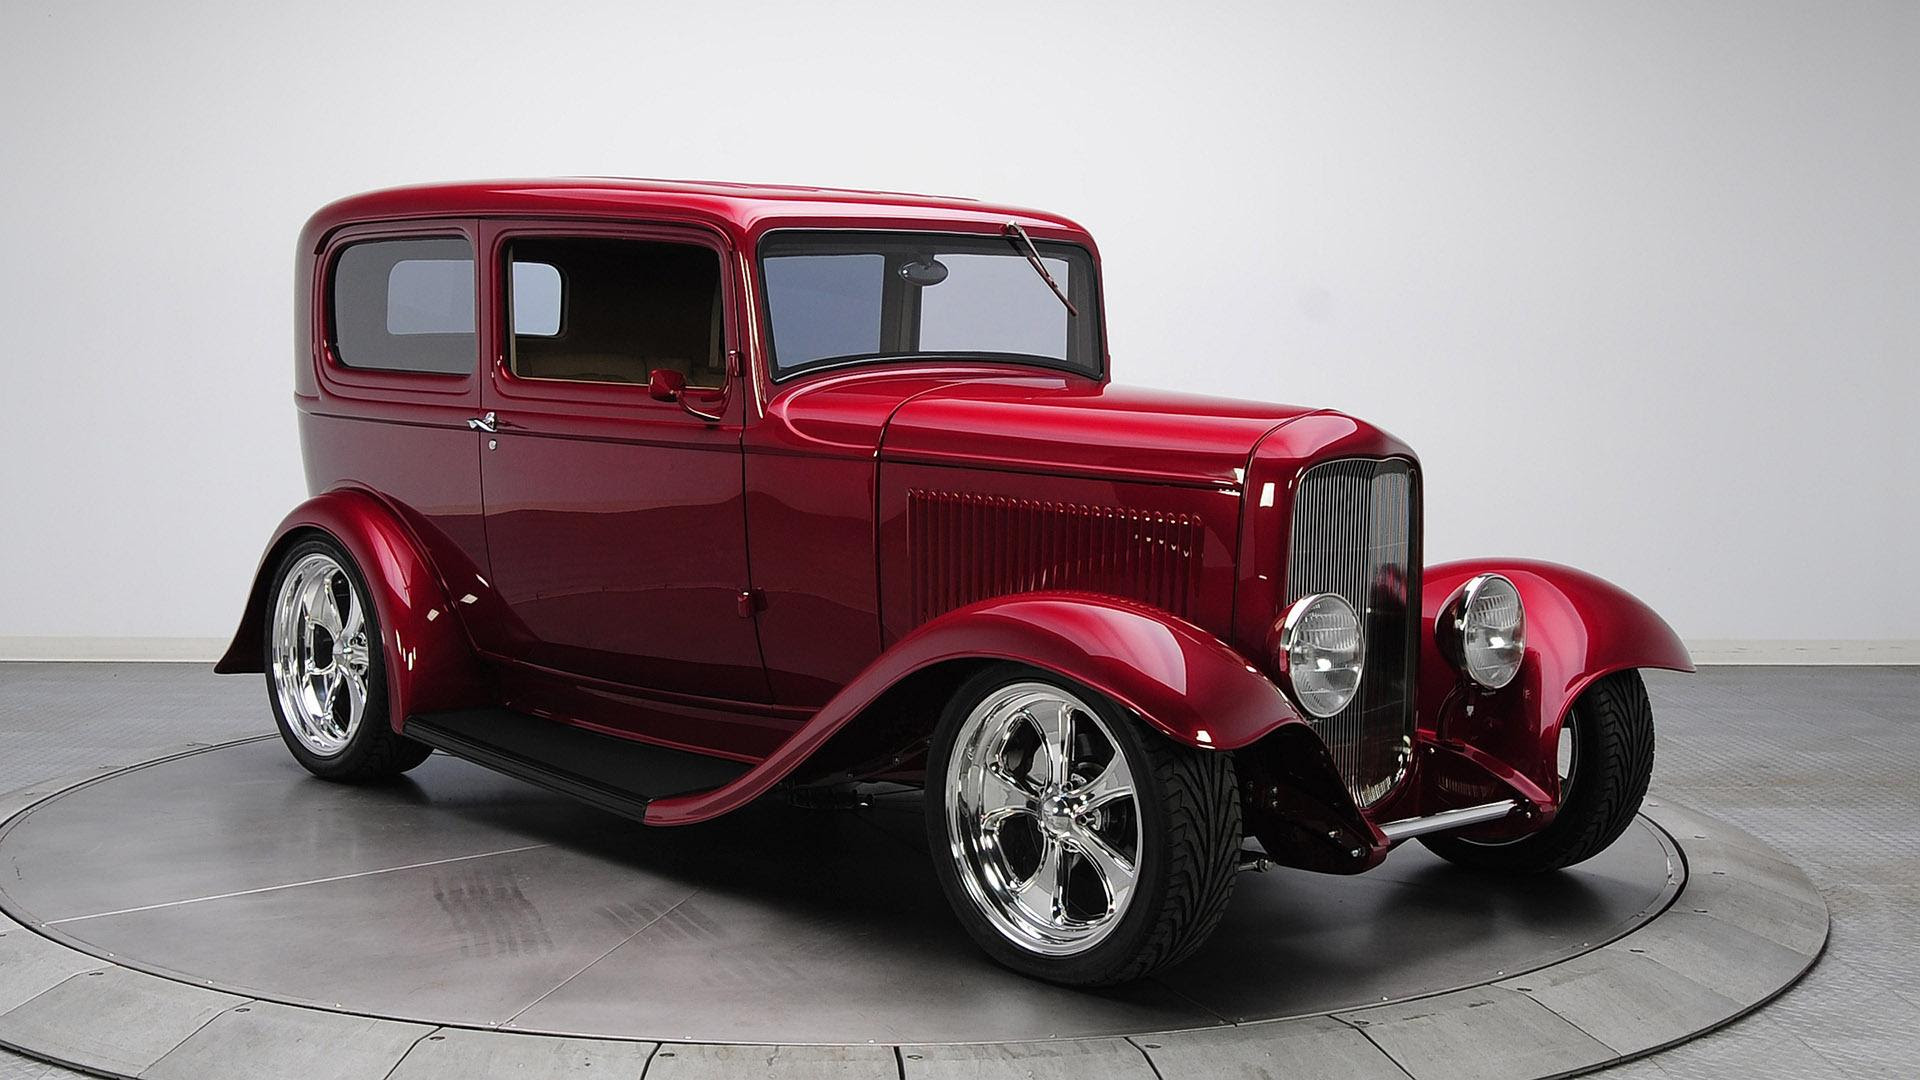 Red vintage Ford car HD desktop wallpaper : Widescreen : High Definition : Fullscreen